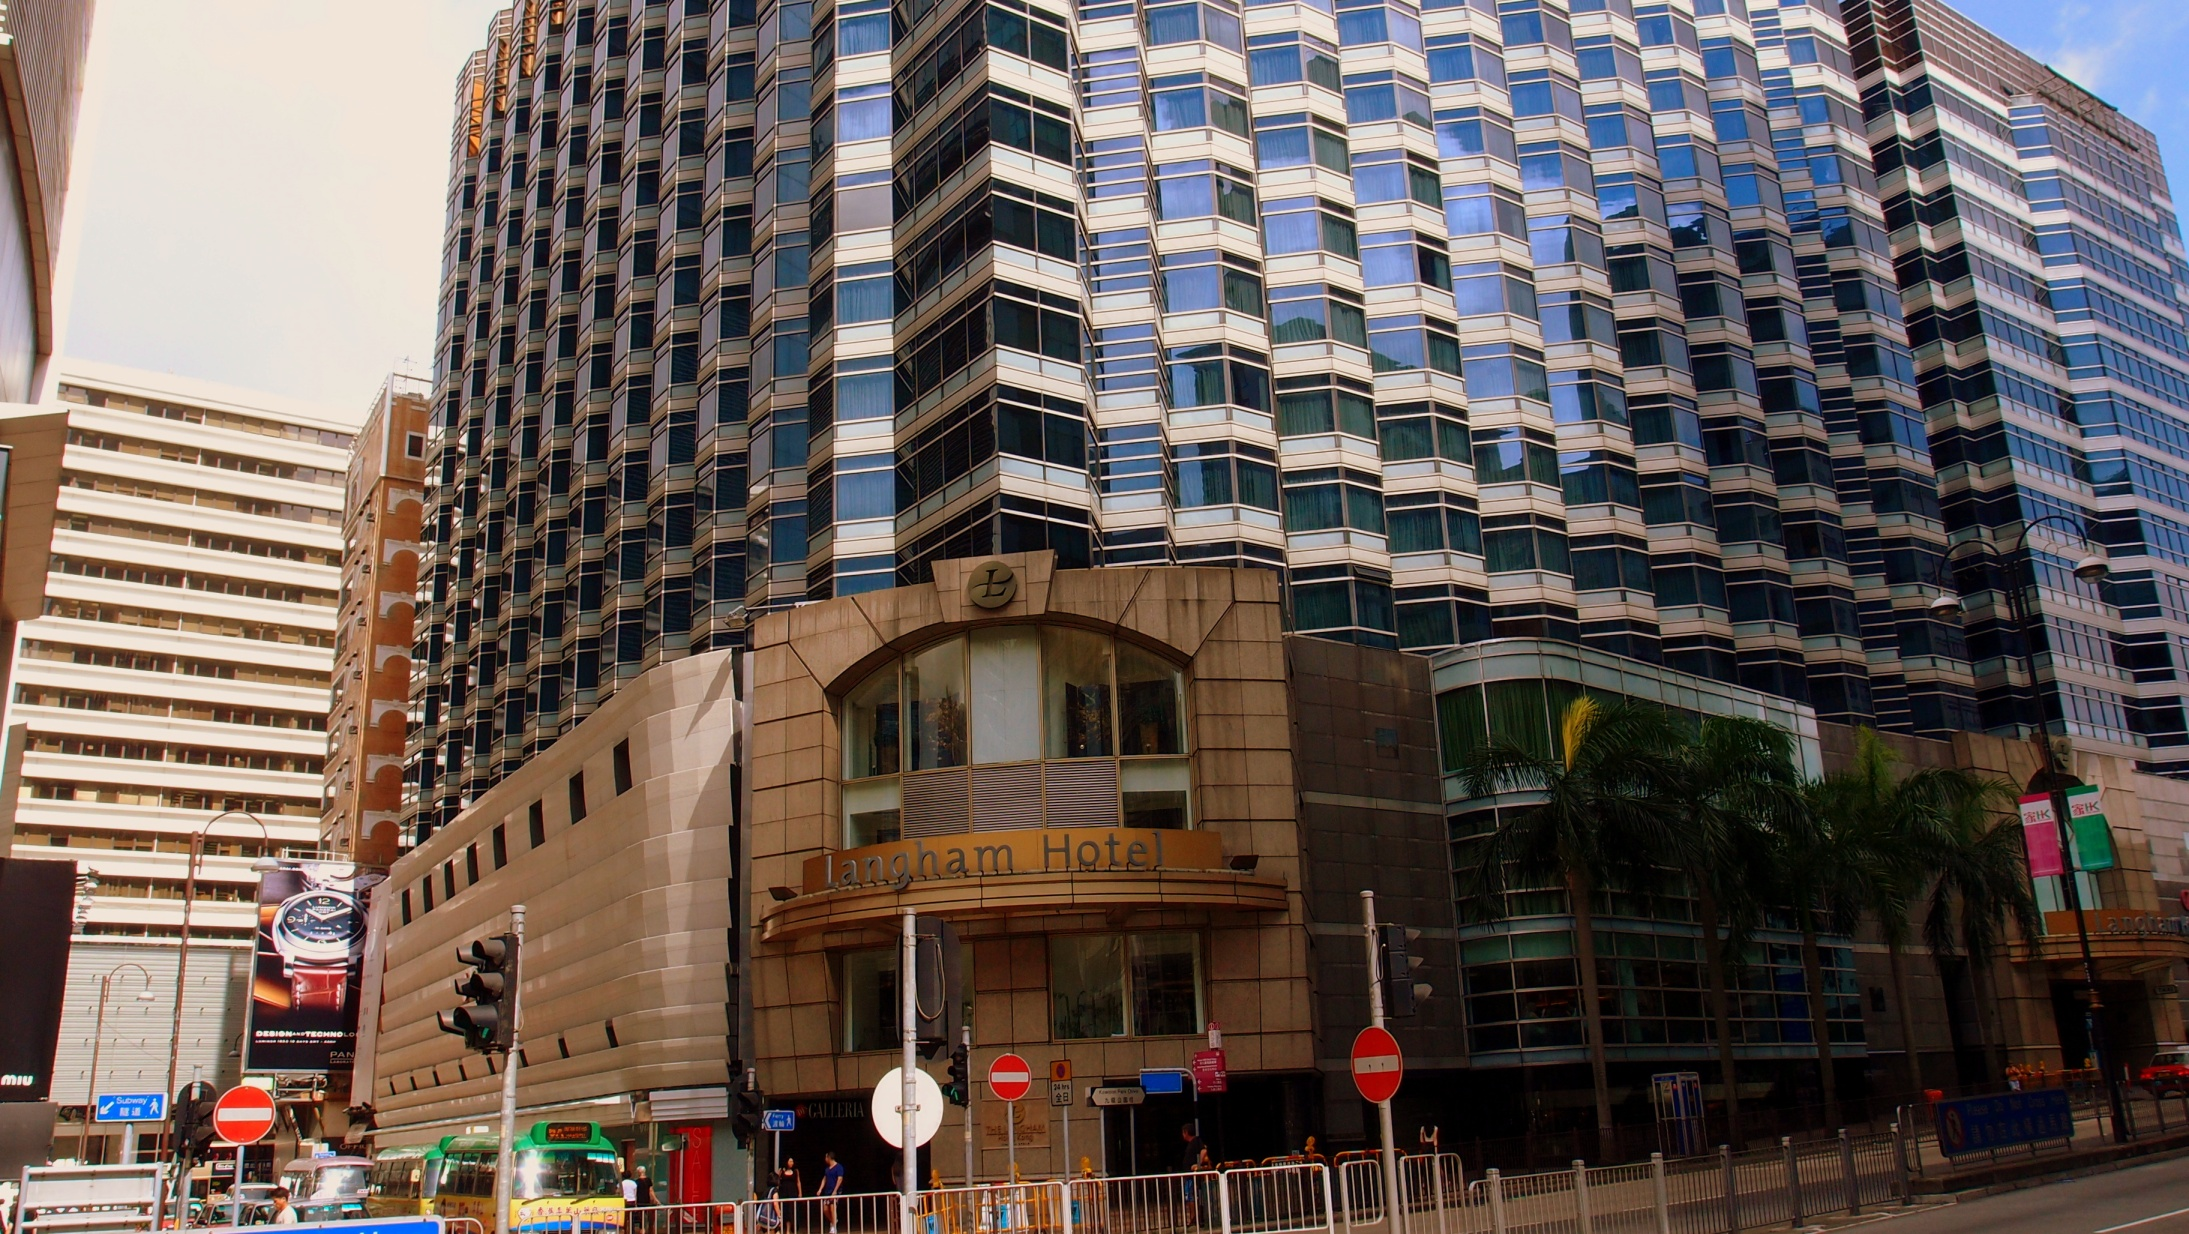 The Langham Hotel, fine hotel in a great location